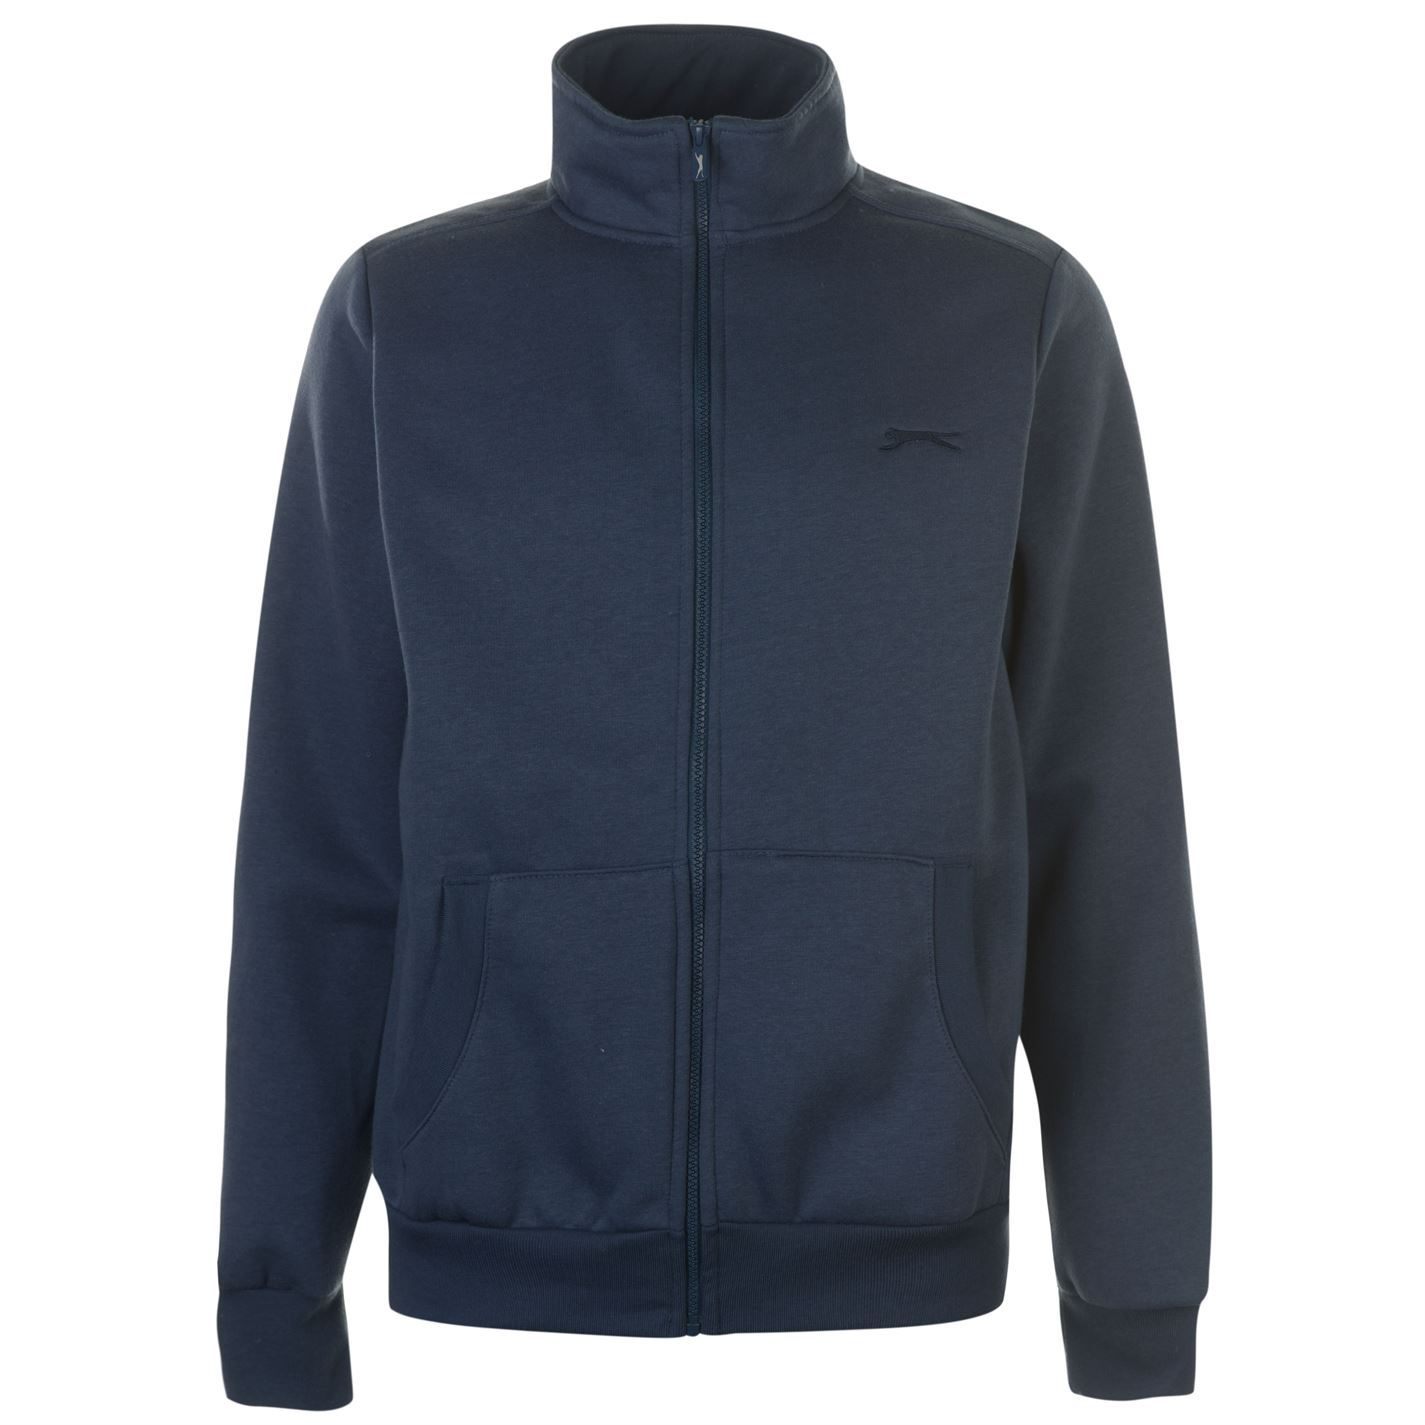 ee7745854d0 Slazenger-Full-Zip-Track-Jacket-Mens-Tracksuit-Top thumbnail